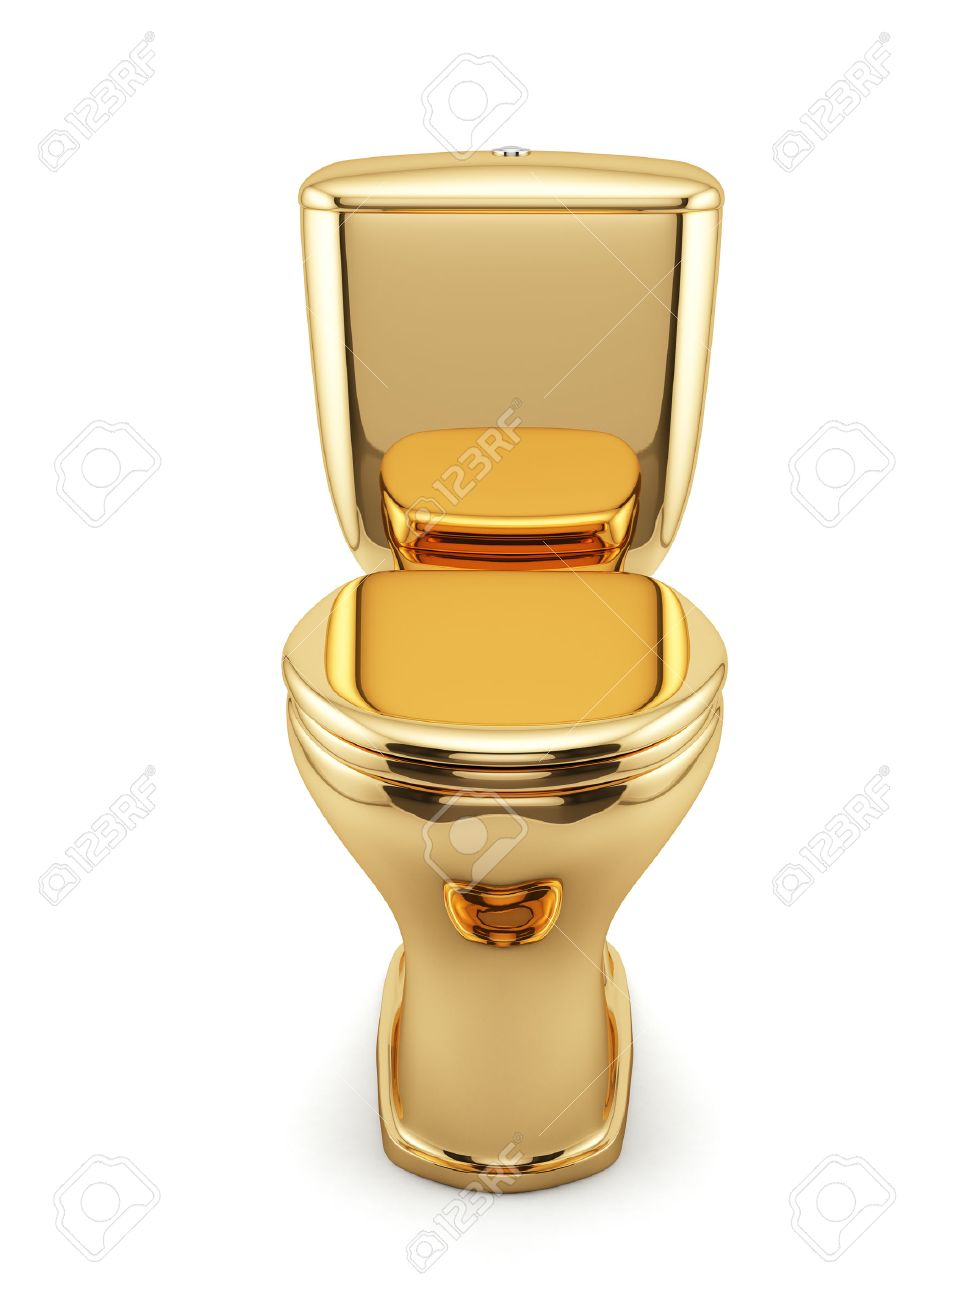 gold toilet. 3d render of golden toilet bowl isolated on white background Stock Photo  26575460 Render Of Golden Toilet Bowl Isolated On White Background